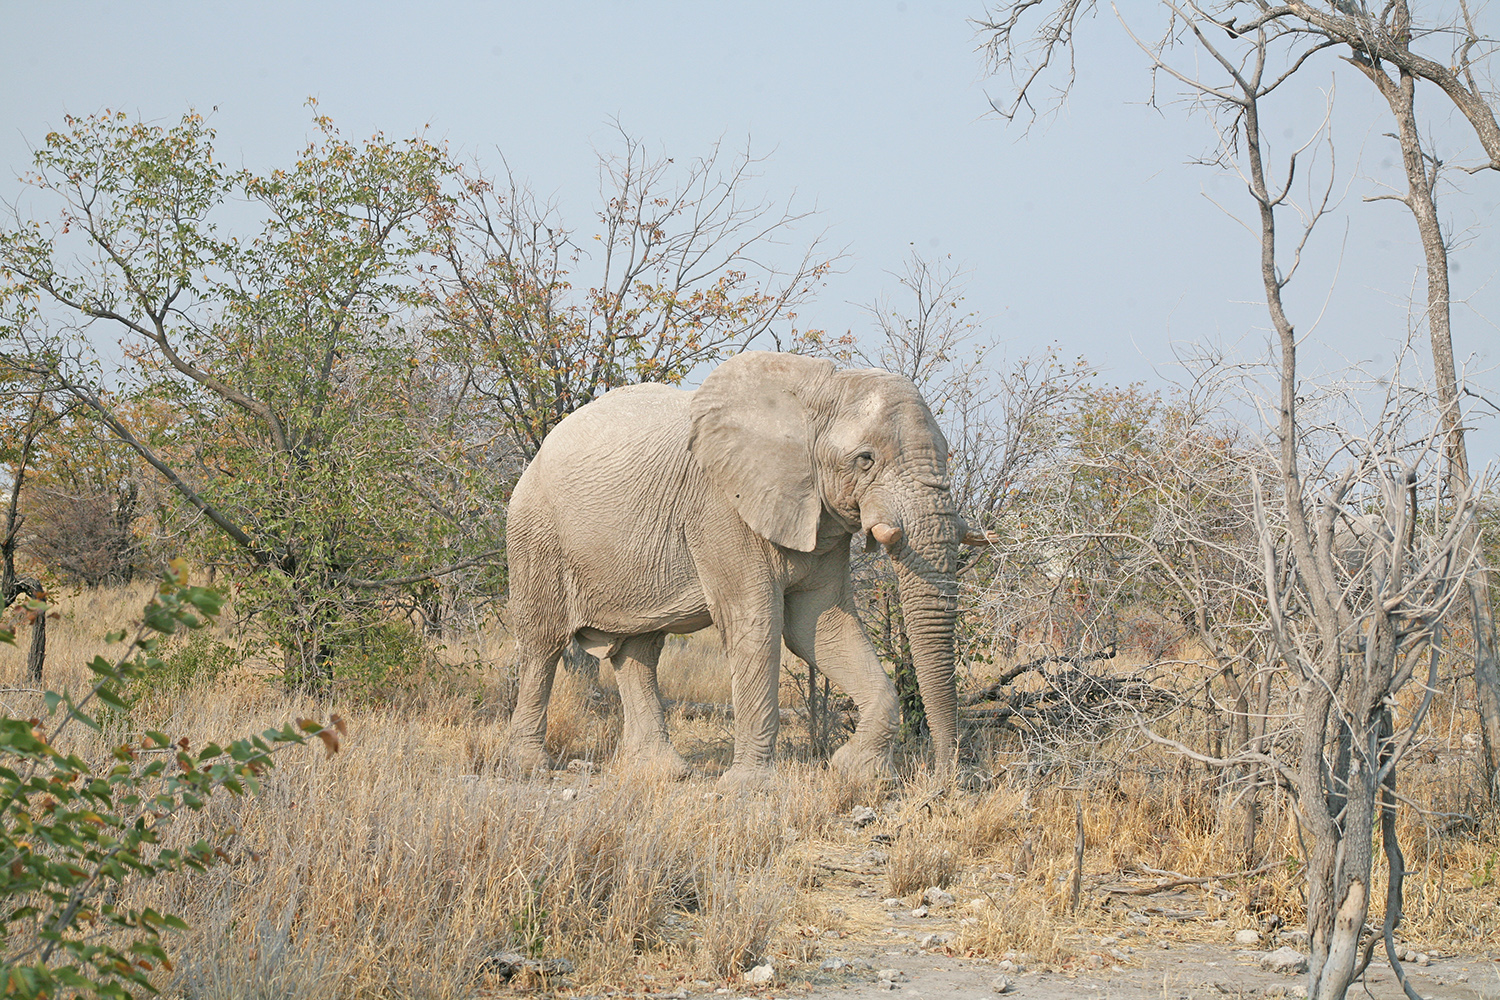 Etosha-nationa-park-safari-watering-elephant